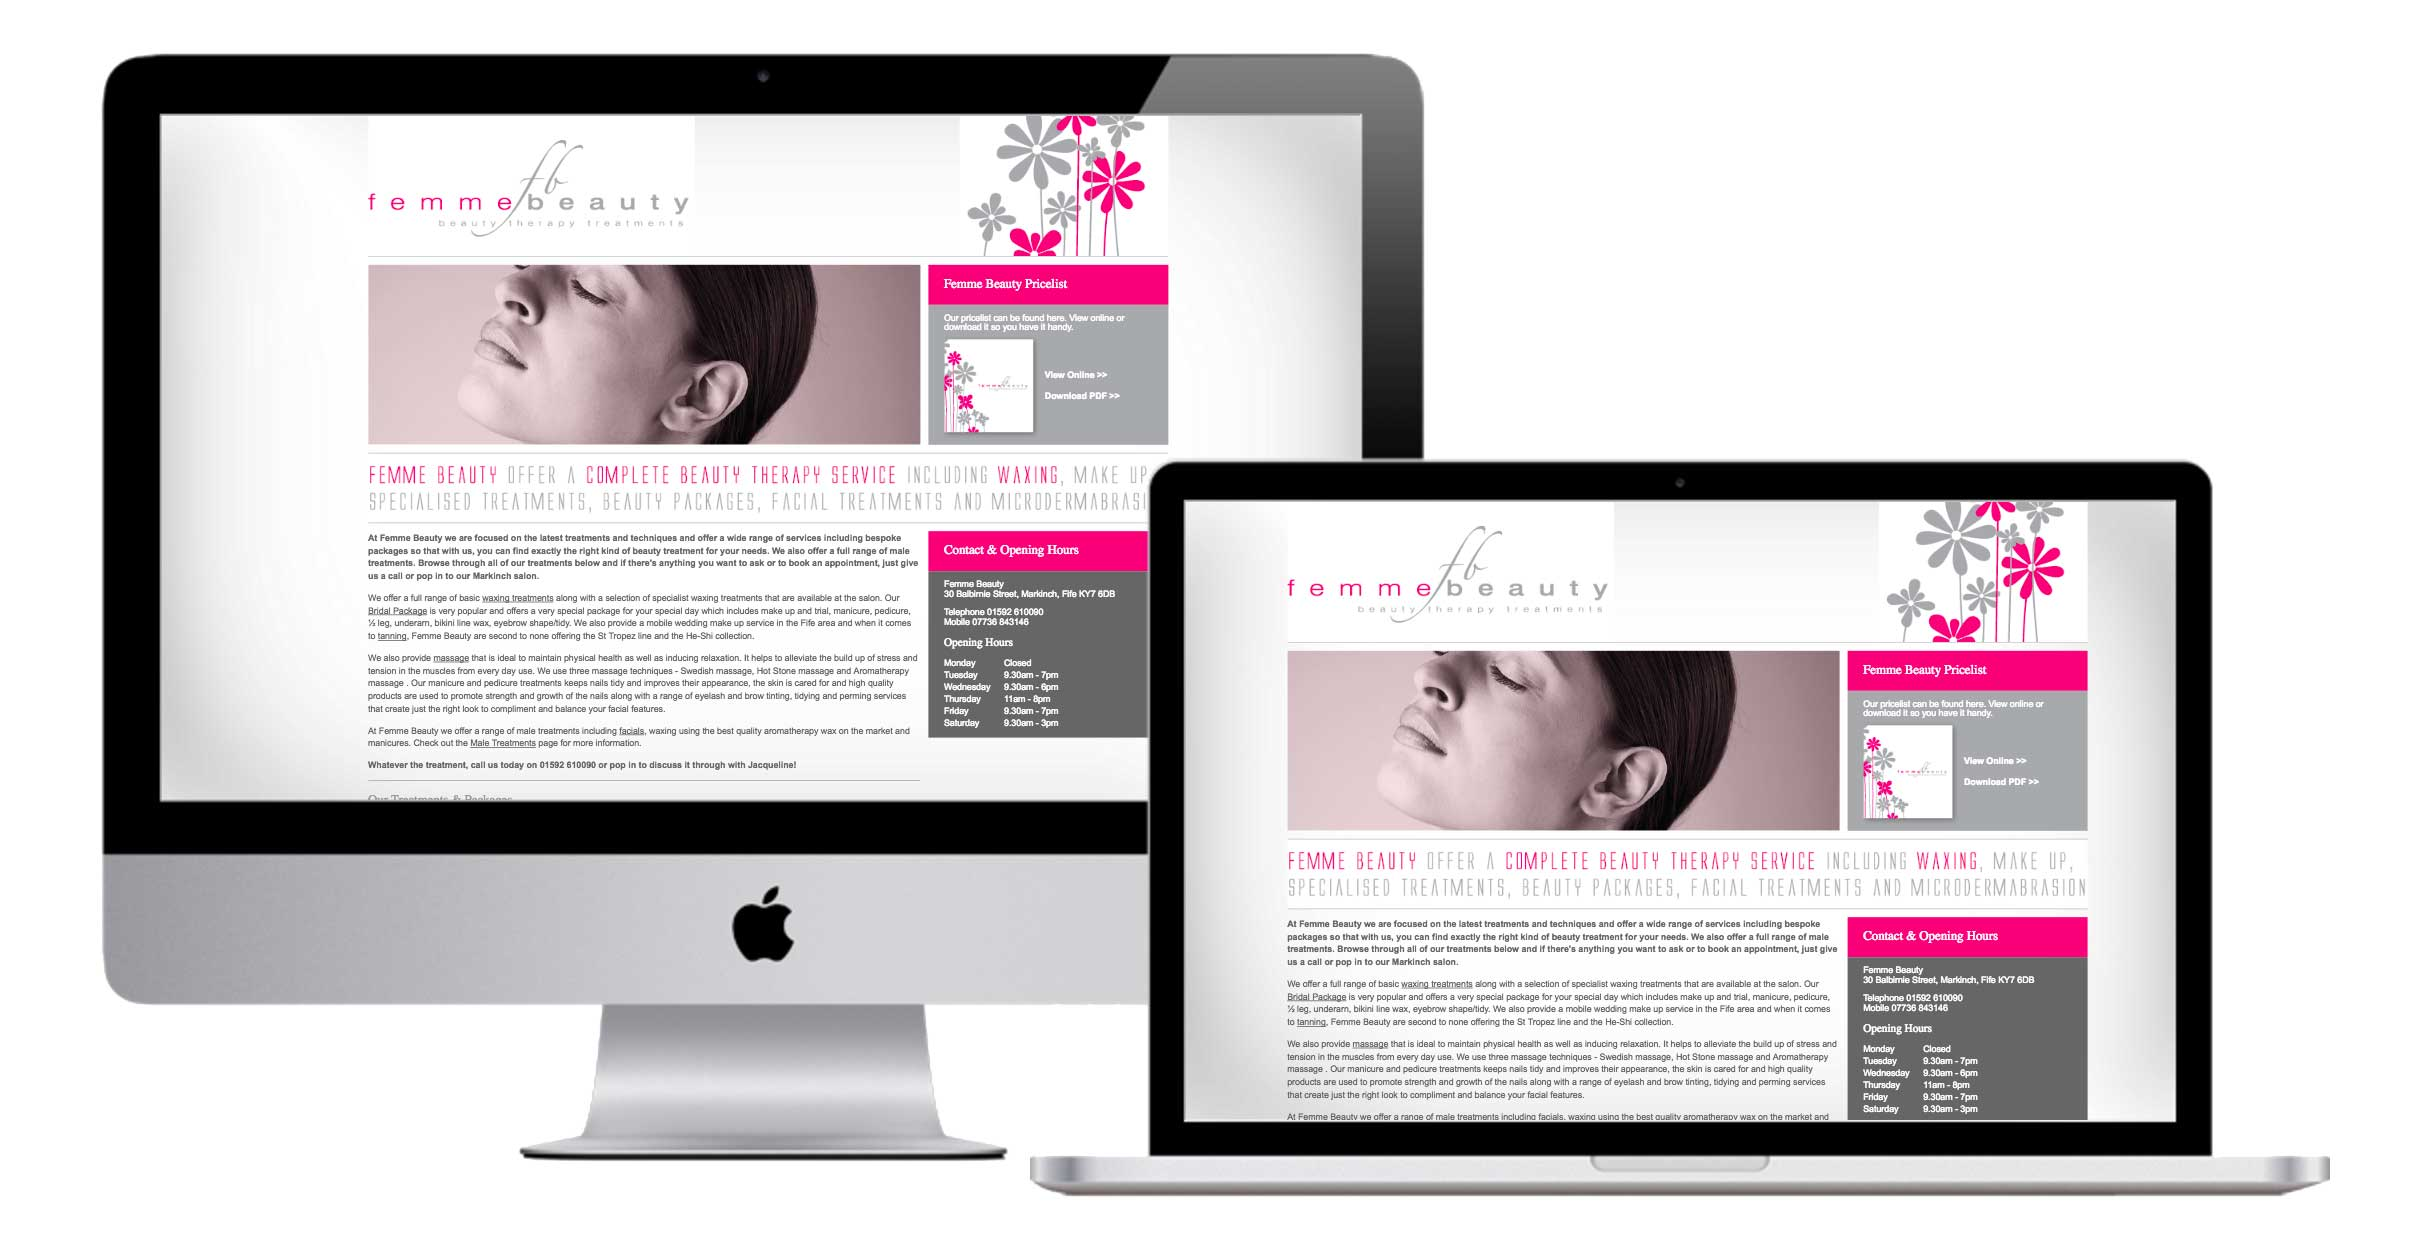 website for femme beauty by firesway design and digital